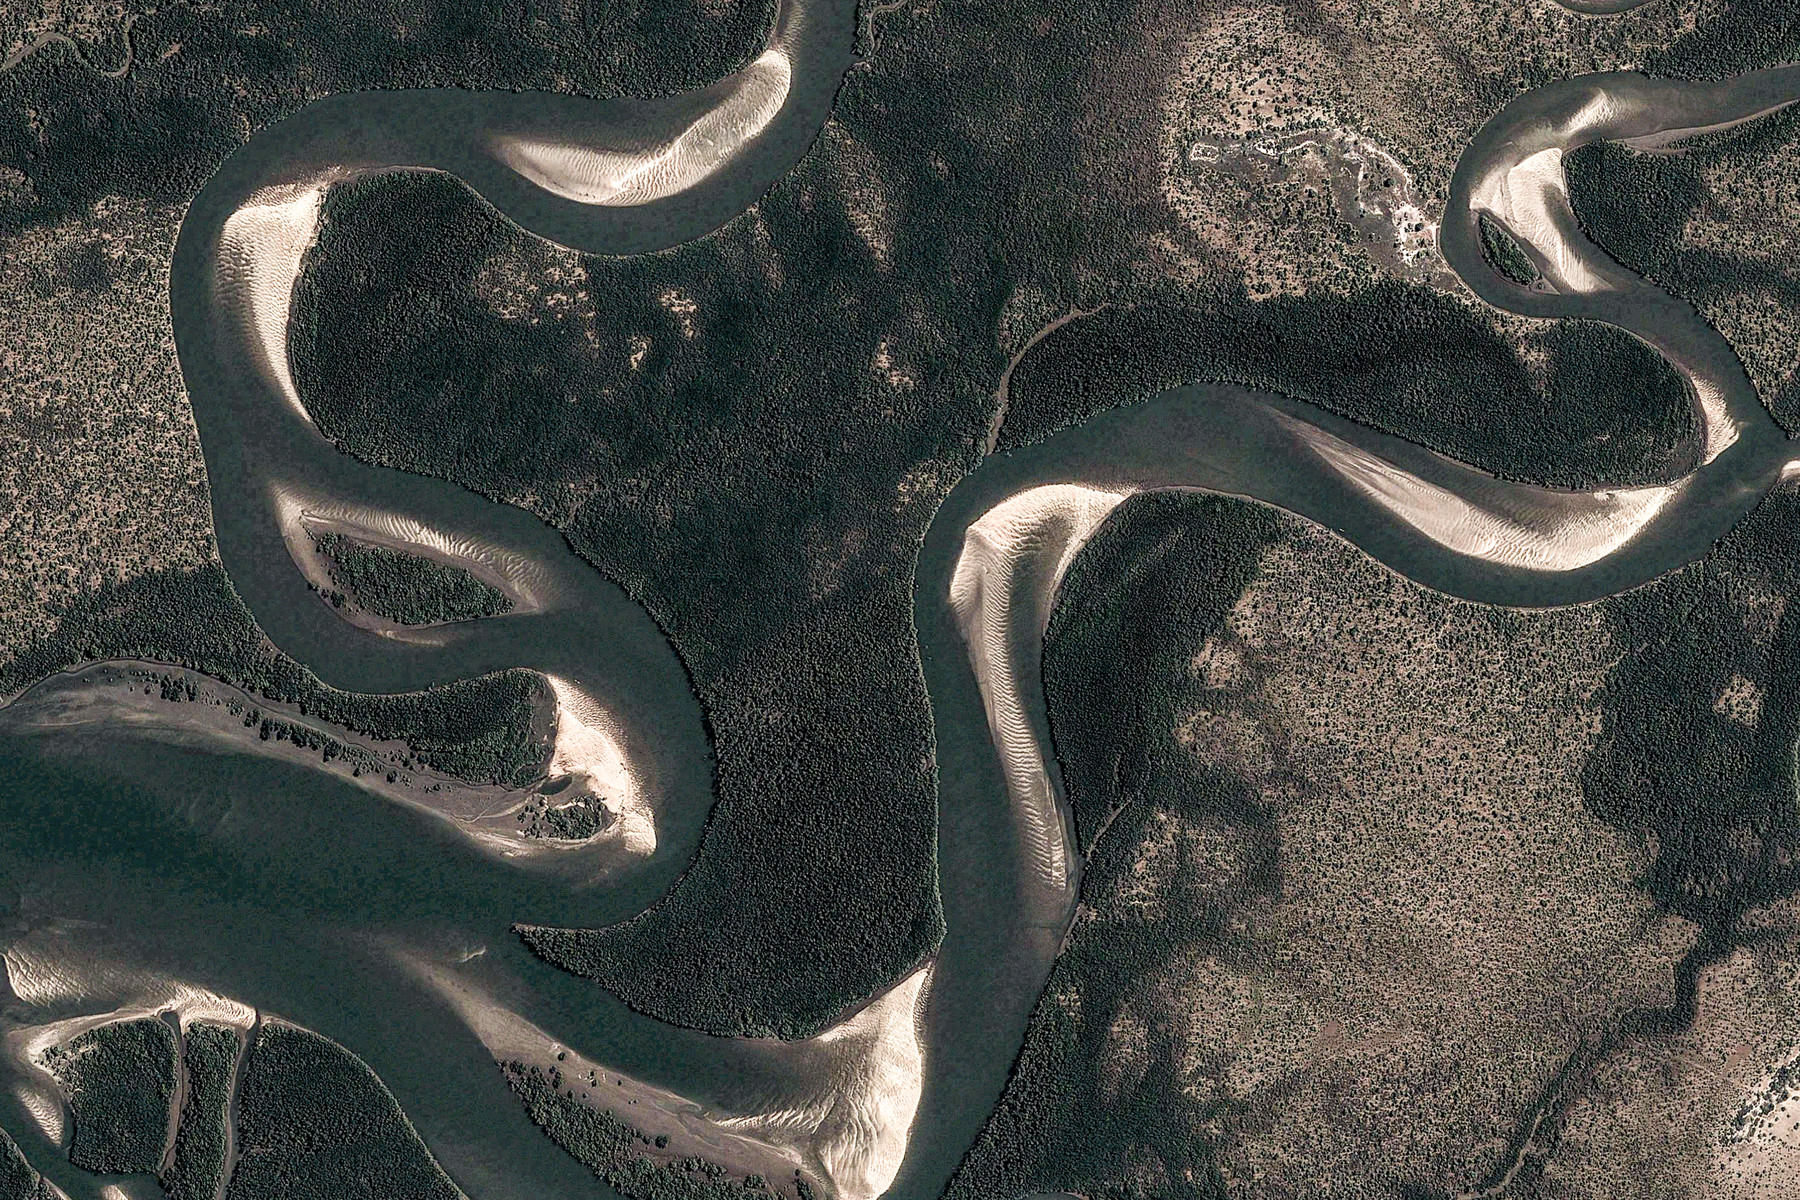 google-earth-Madagascar-BeloniTsiribihina-6013